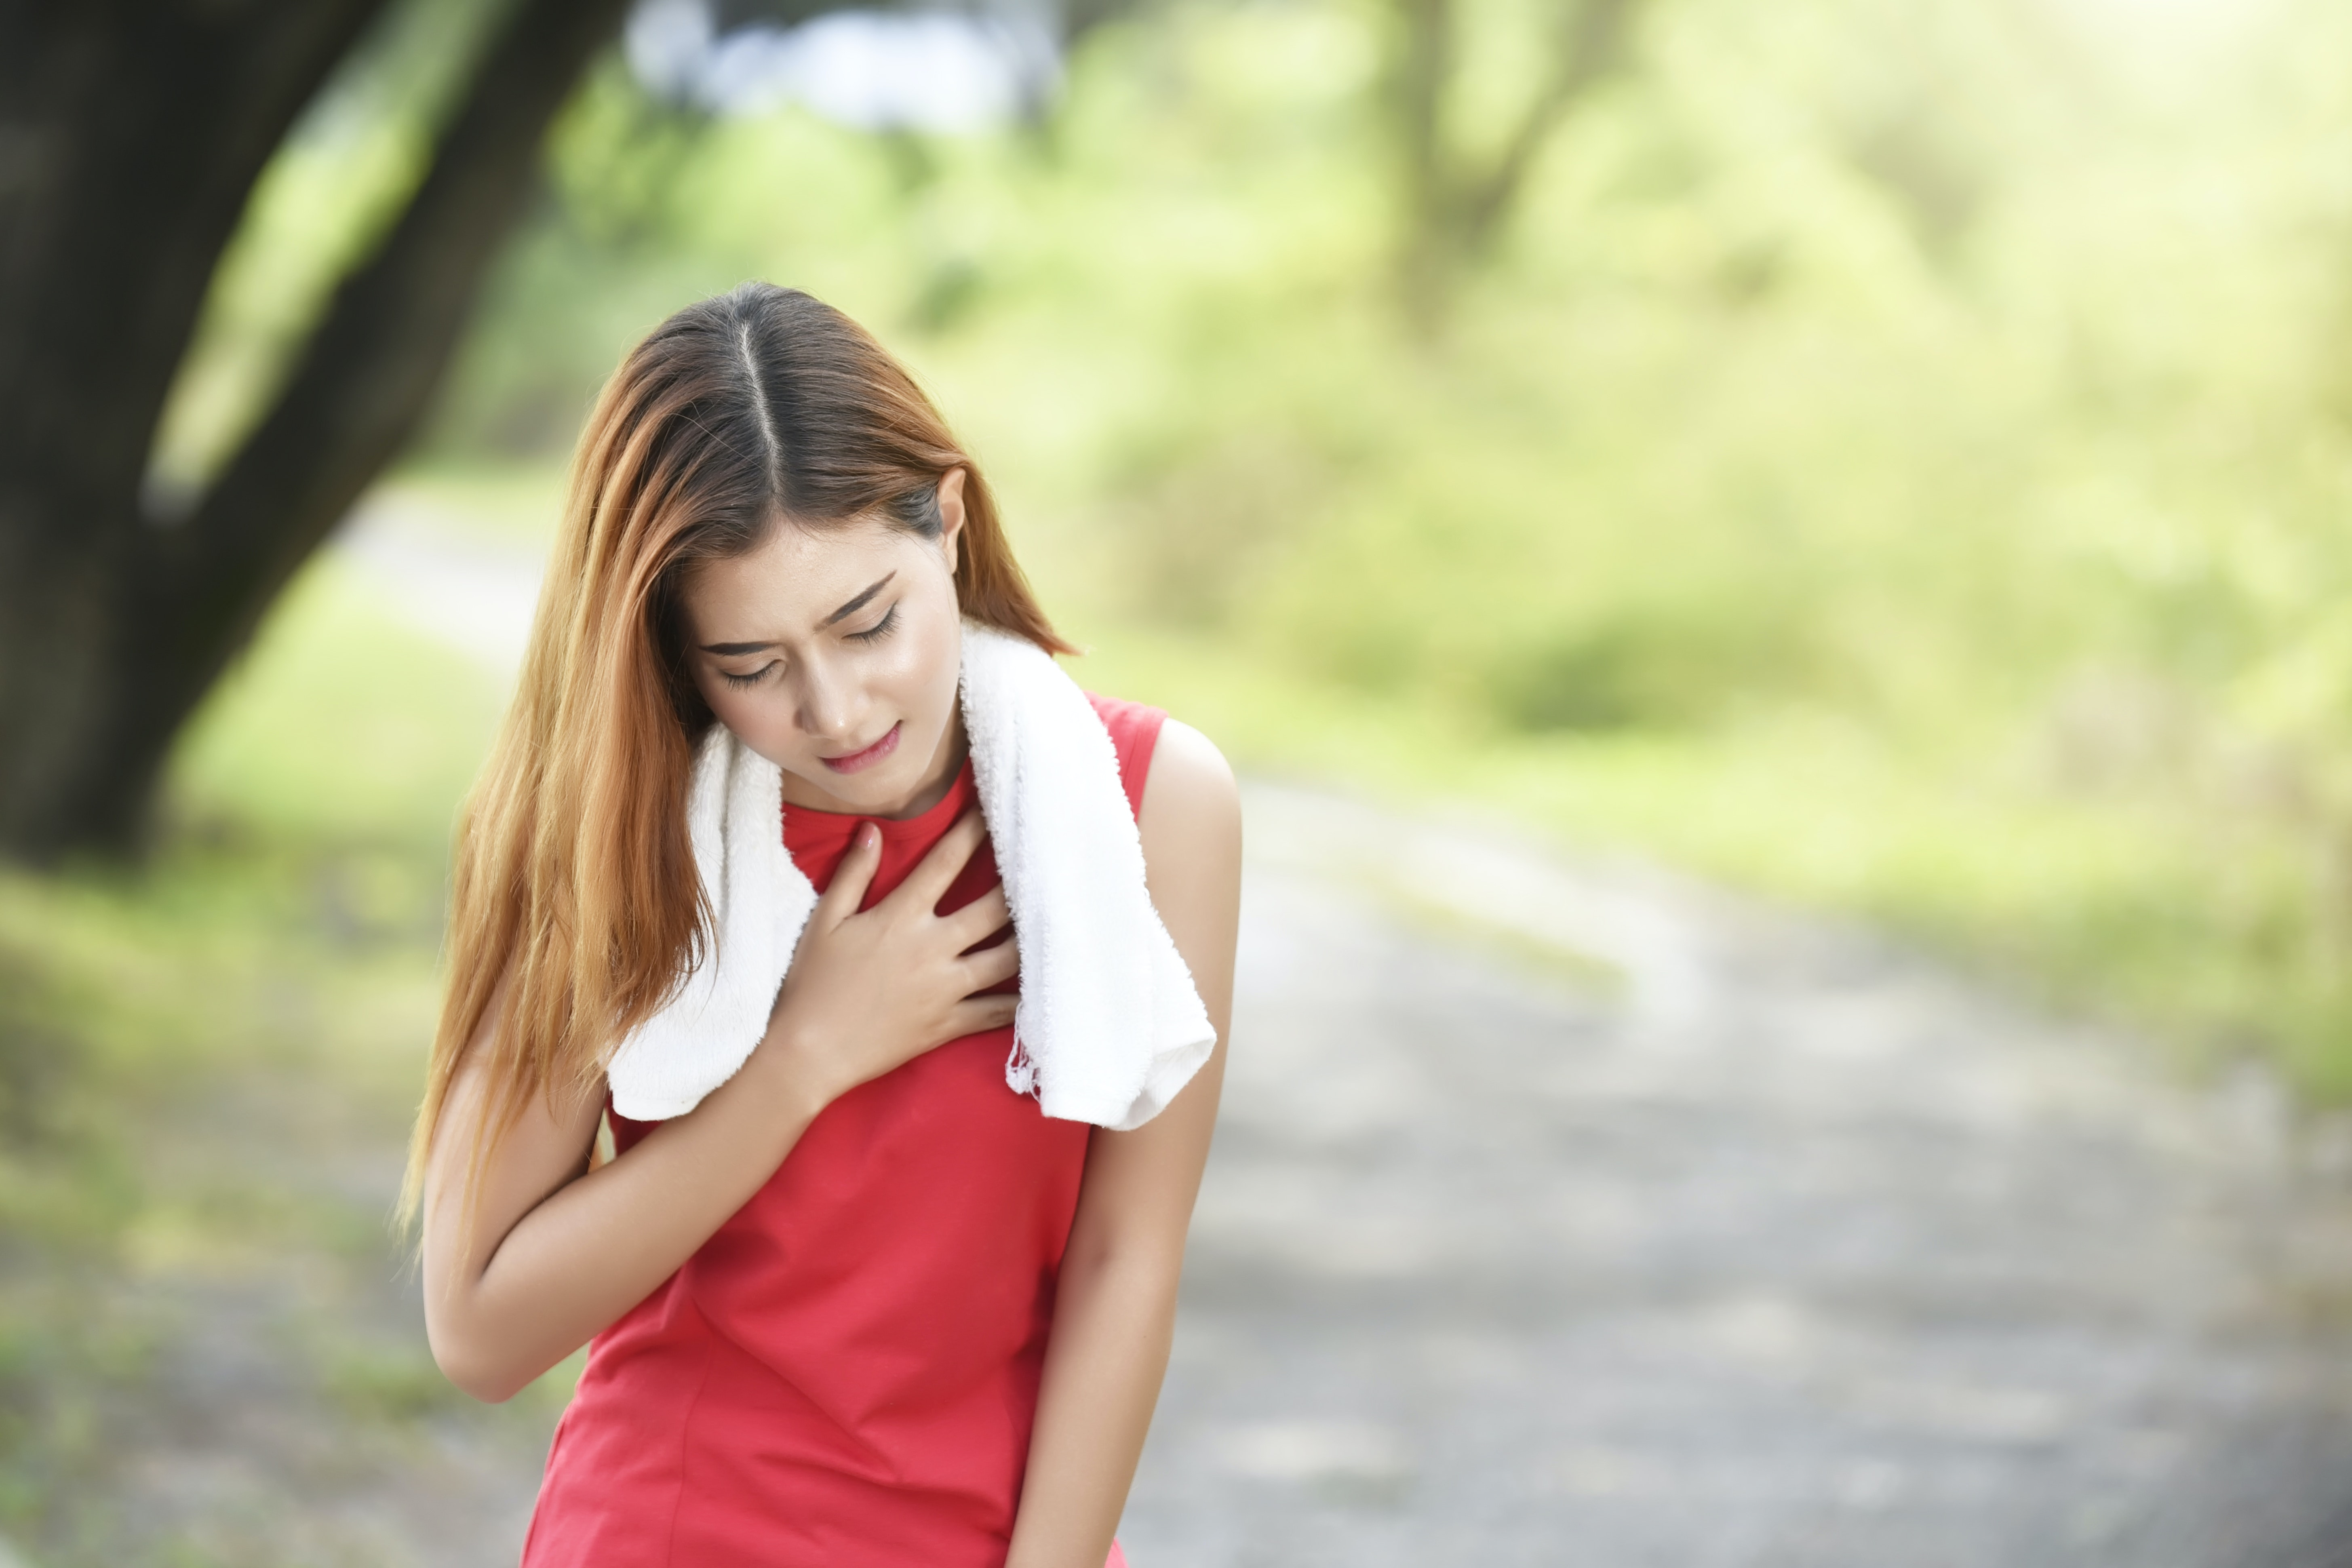 An image depicting a person suffering from racing heart beat symptoms